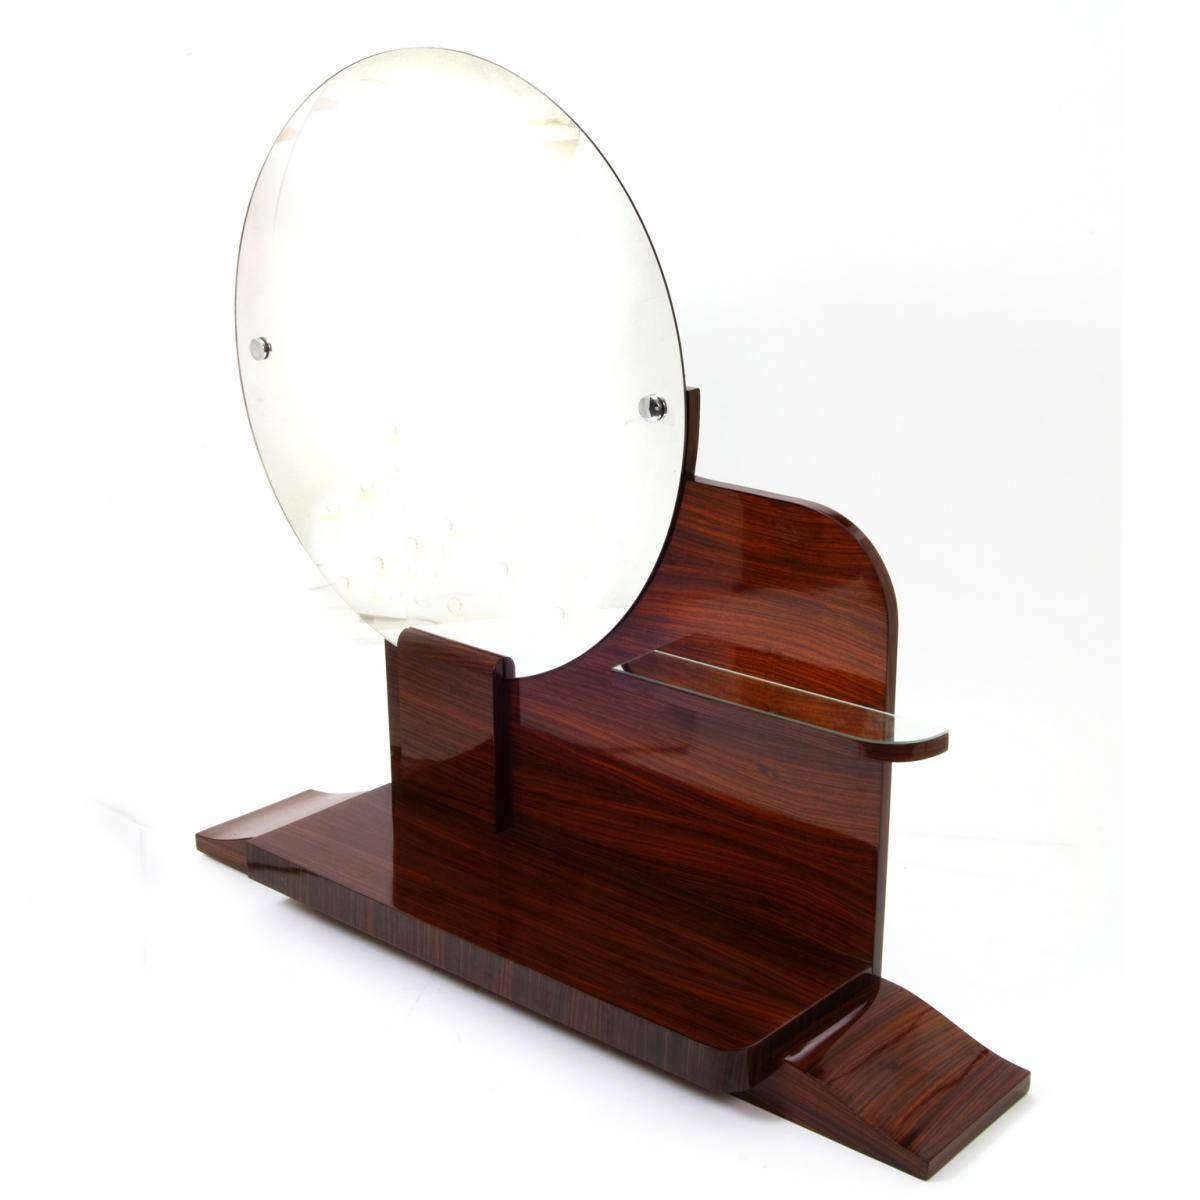 Round Art Deco Mirror With Shelves For Sale At Pamono throughout Round Art Deco Mirrors (Image 12 of 15)